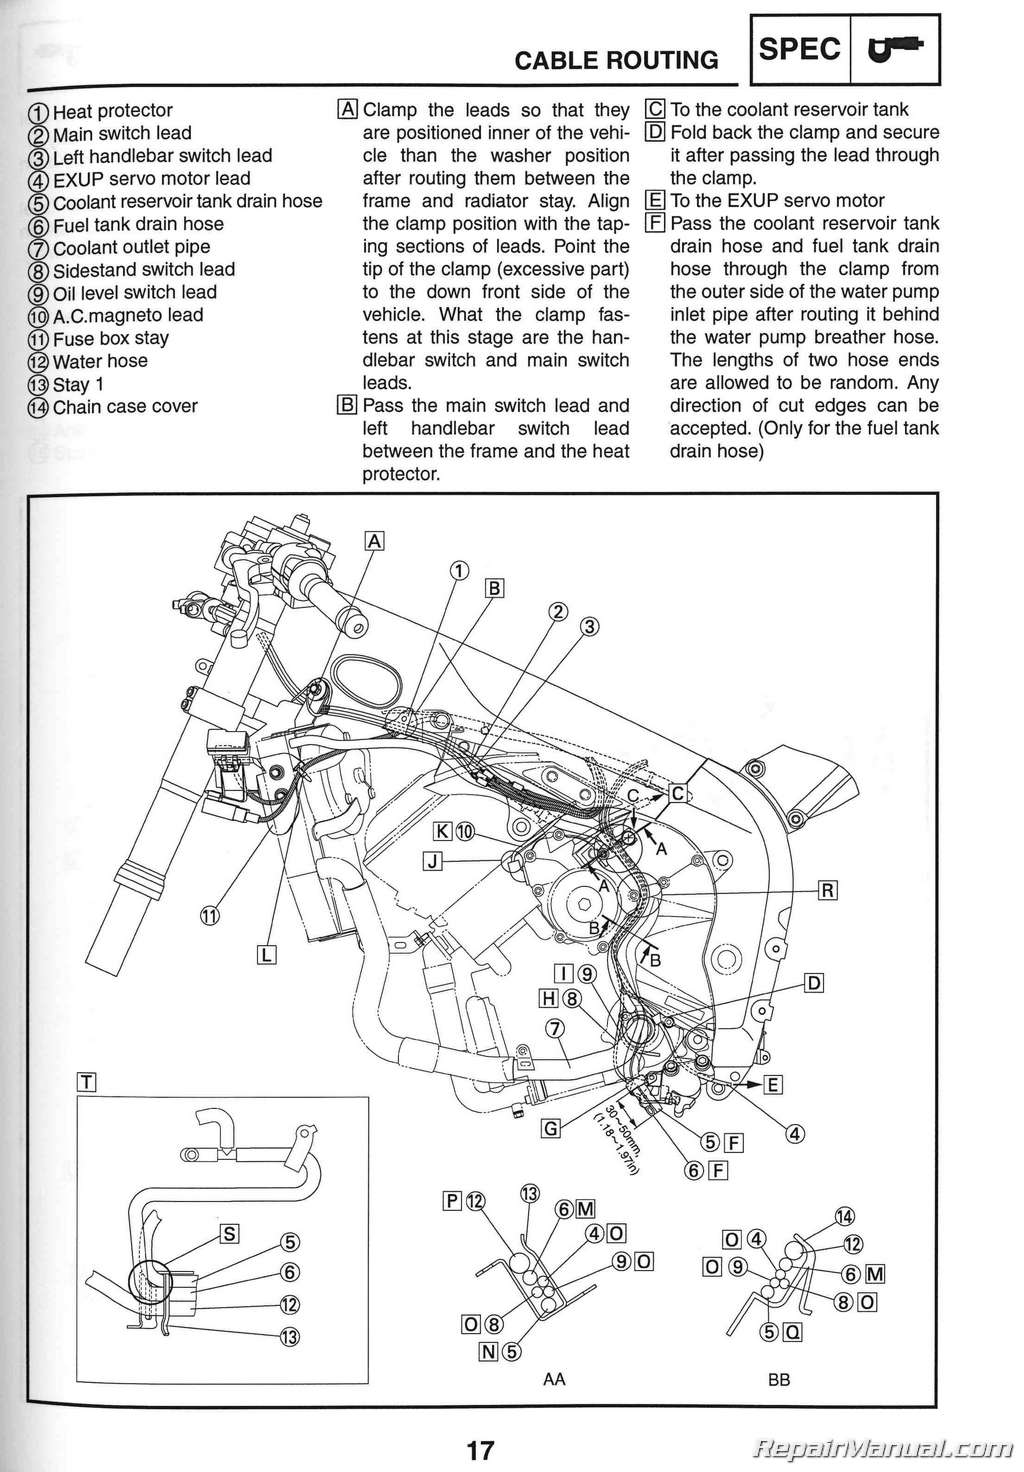 2012 Yzf R1 Wire Diagram Wiring Library 2000 Yamaha 2006 Motorcycle Service Manual Rh Repairmanual Review